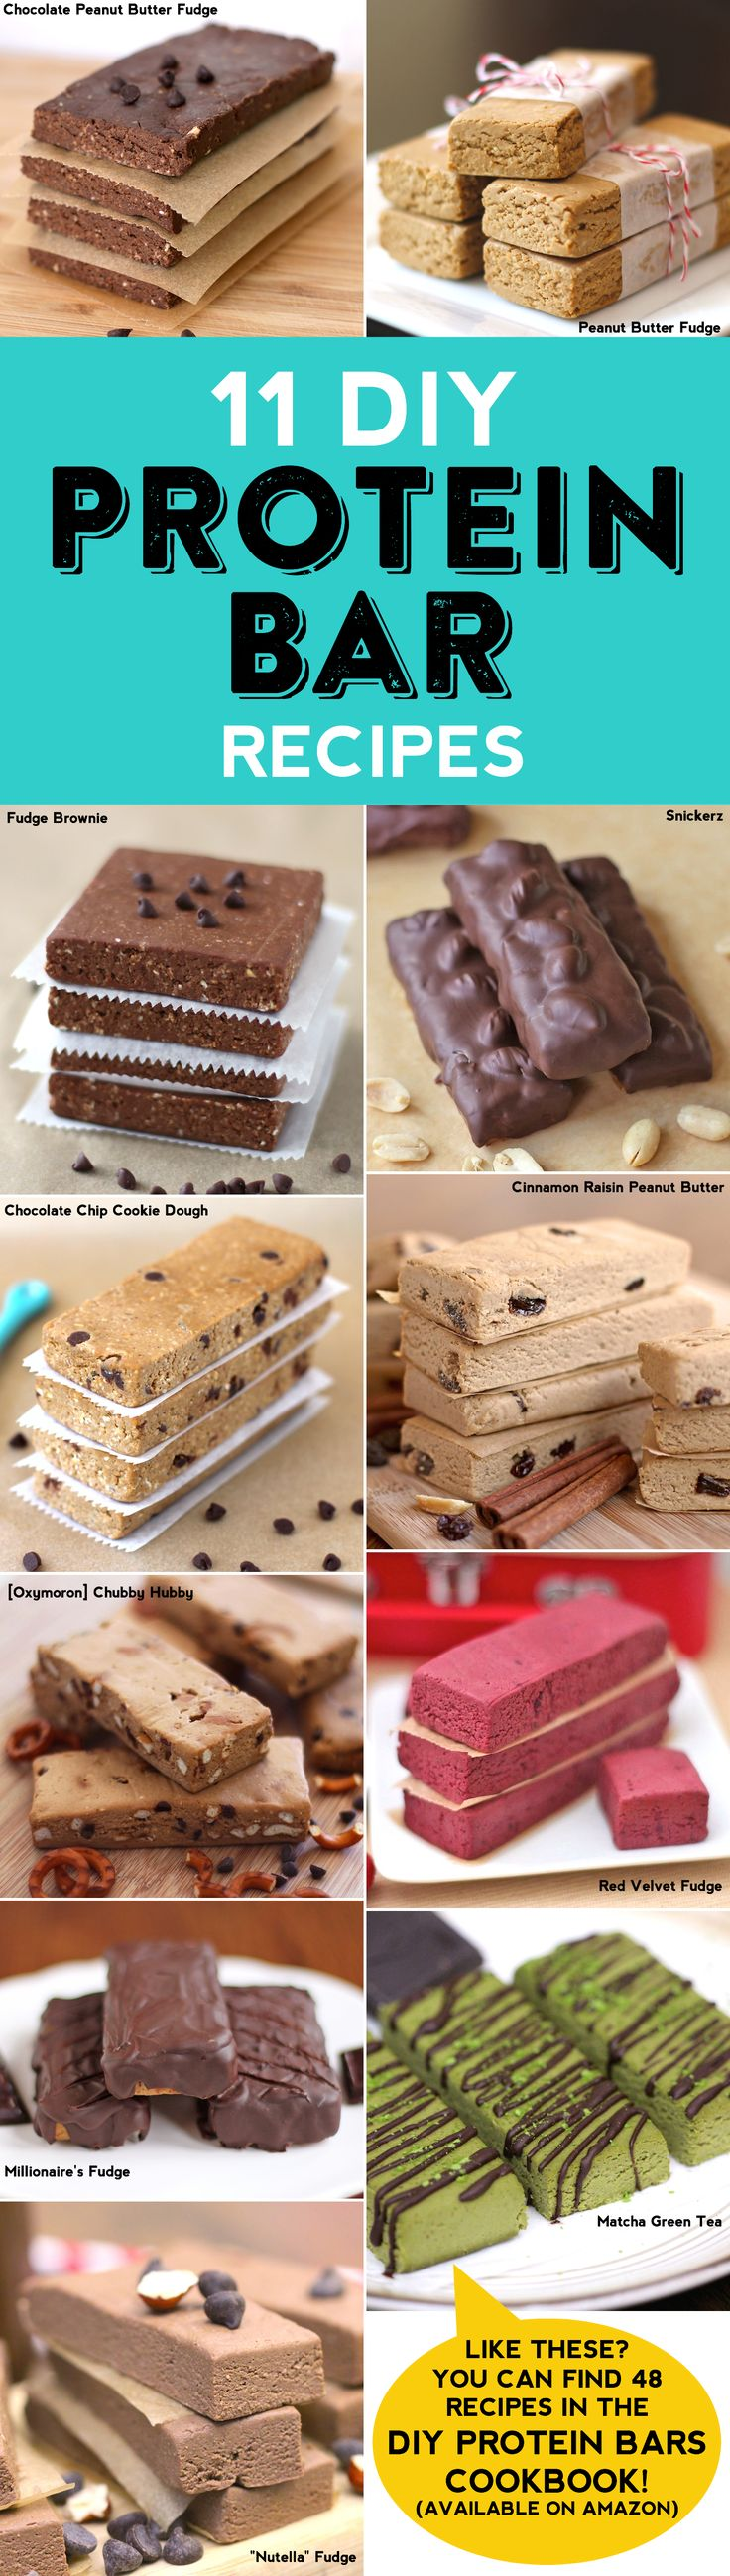 11 Healthy DIY Protein Bar Recipes + a GIVEAWAY! Tired of buying protein/energy/snack bars from the store (and shelling out all the cash for them)? Make protein bars at home! They're no-bake, ultra fudgy and nice and sweet, you'd never know they're refined sugar free, gluten free, vegan and all natural. Yup, absolutely NO preservatives, high-fructose corn syrup or artificial flavorings. If you like these 11 recipes just WAIT until you see the DIY Protein Bars Cookbook... it's got 48 recipes…